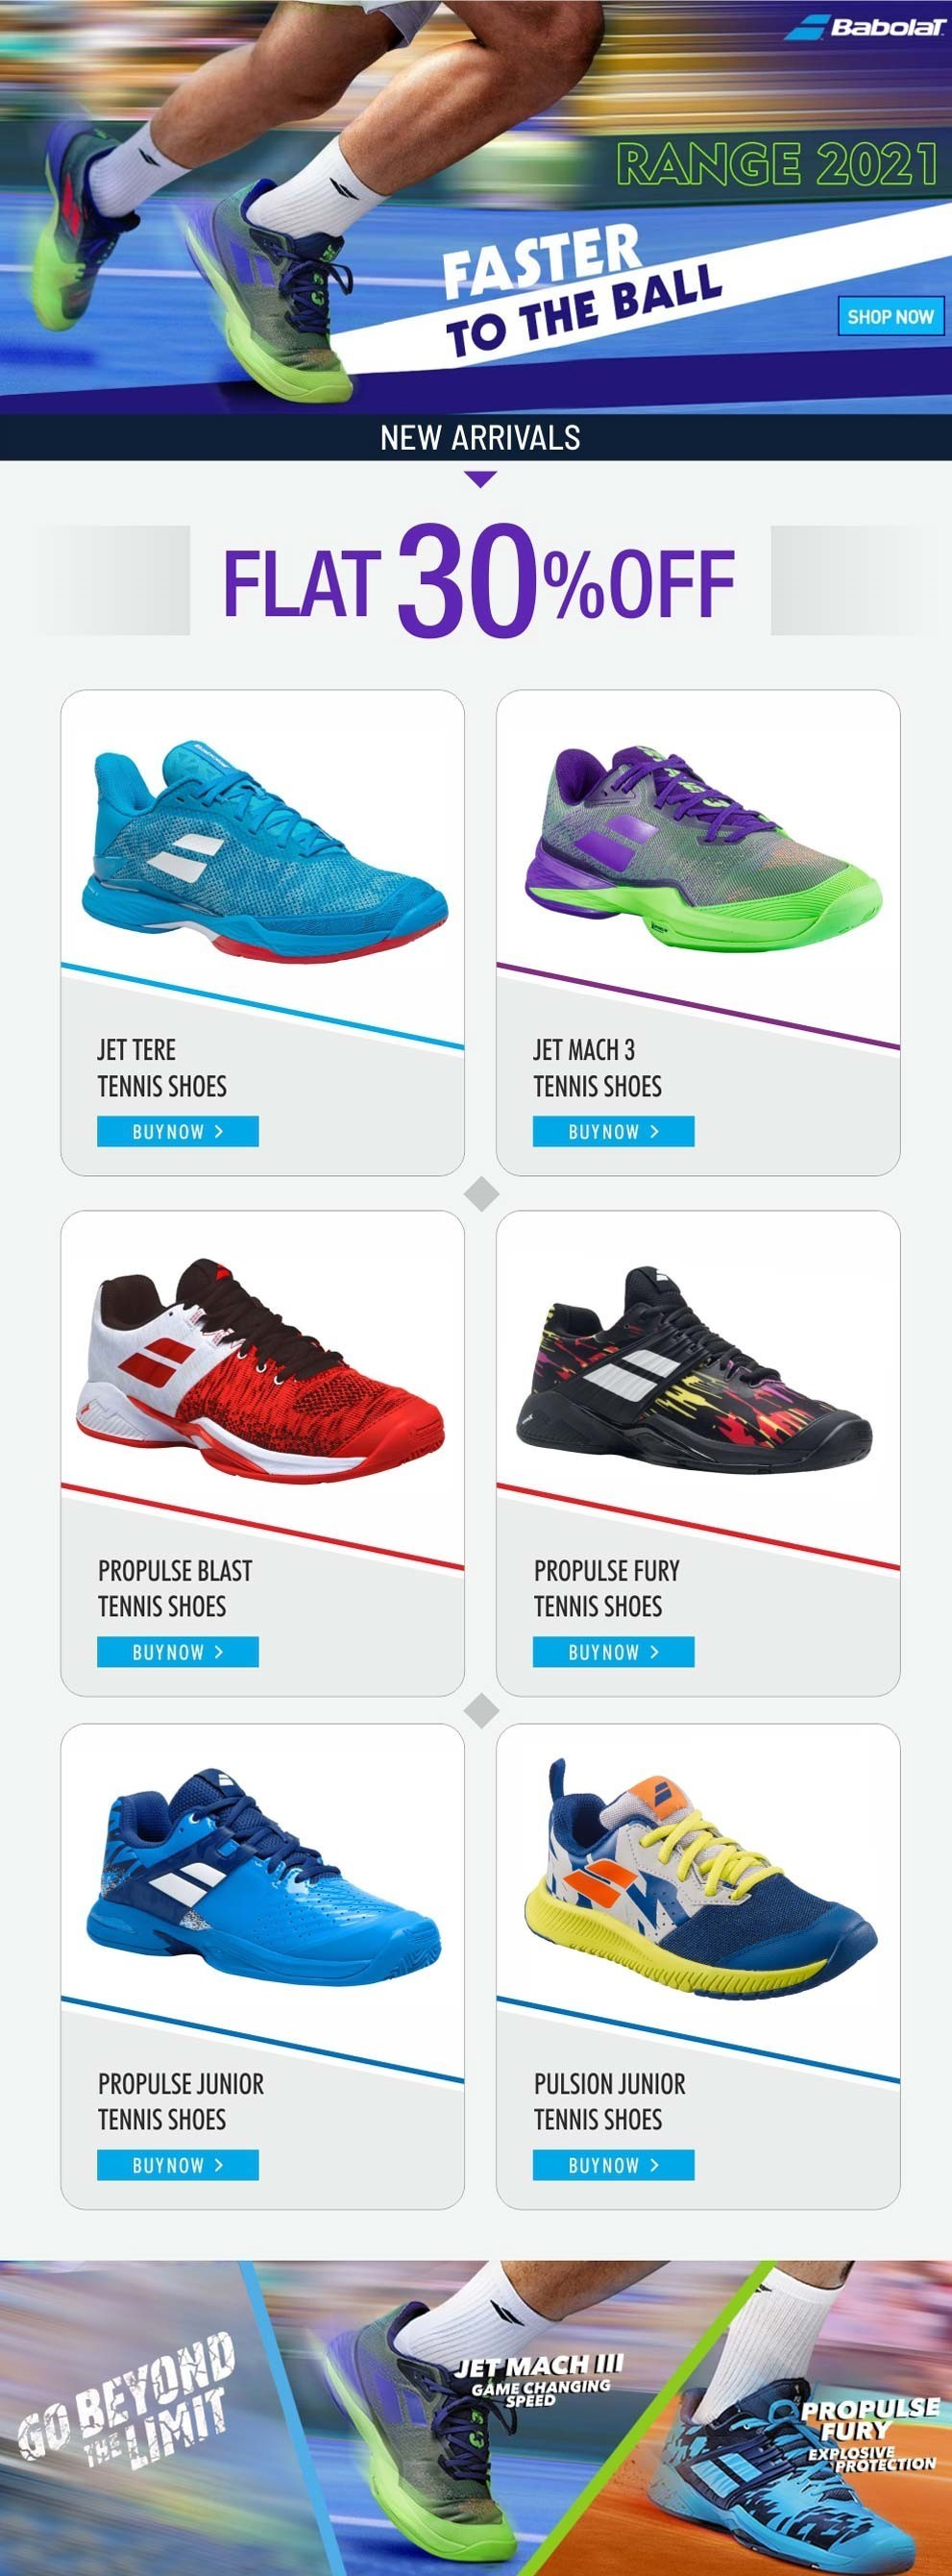 Looking for Babolat Tennis Shoes that can help in dominating court?